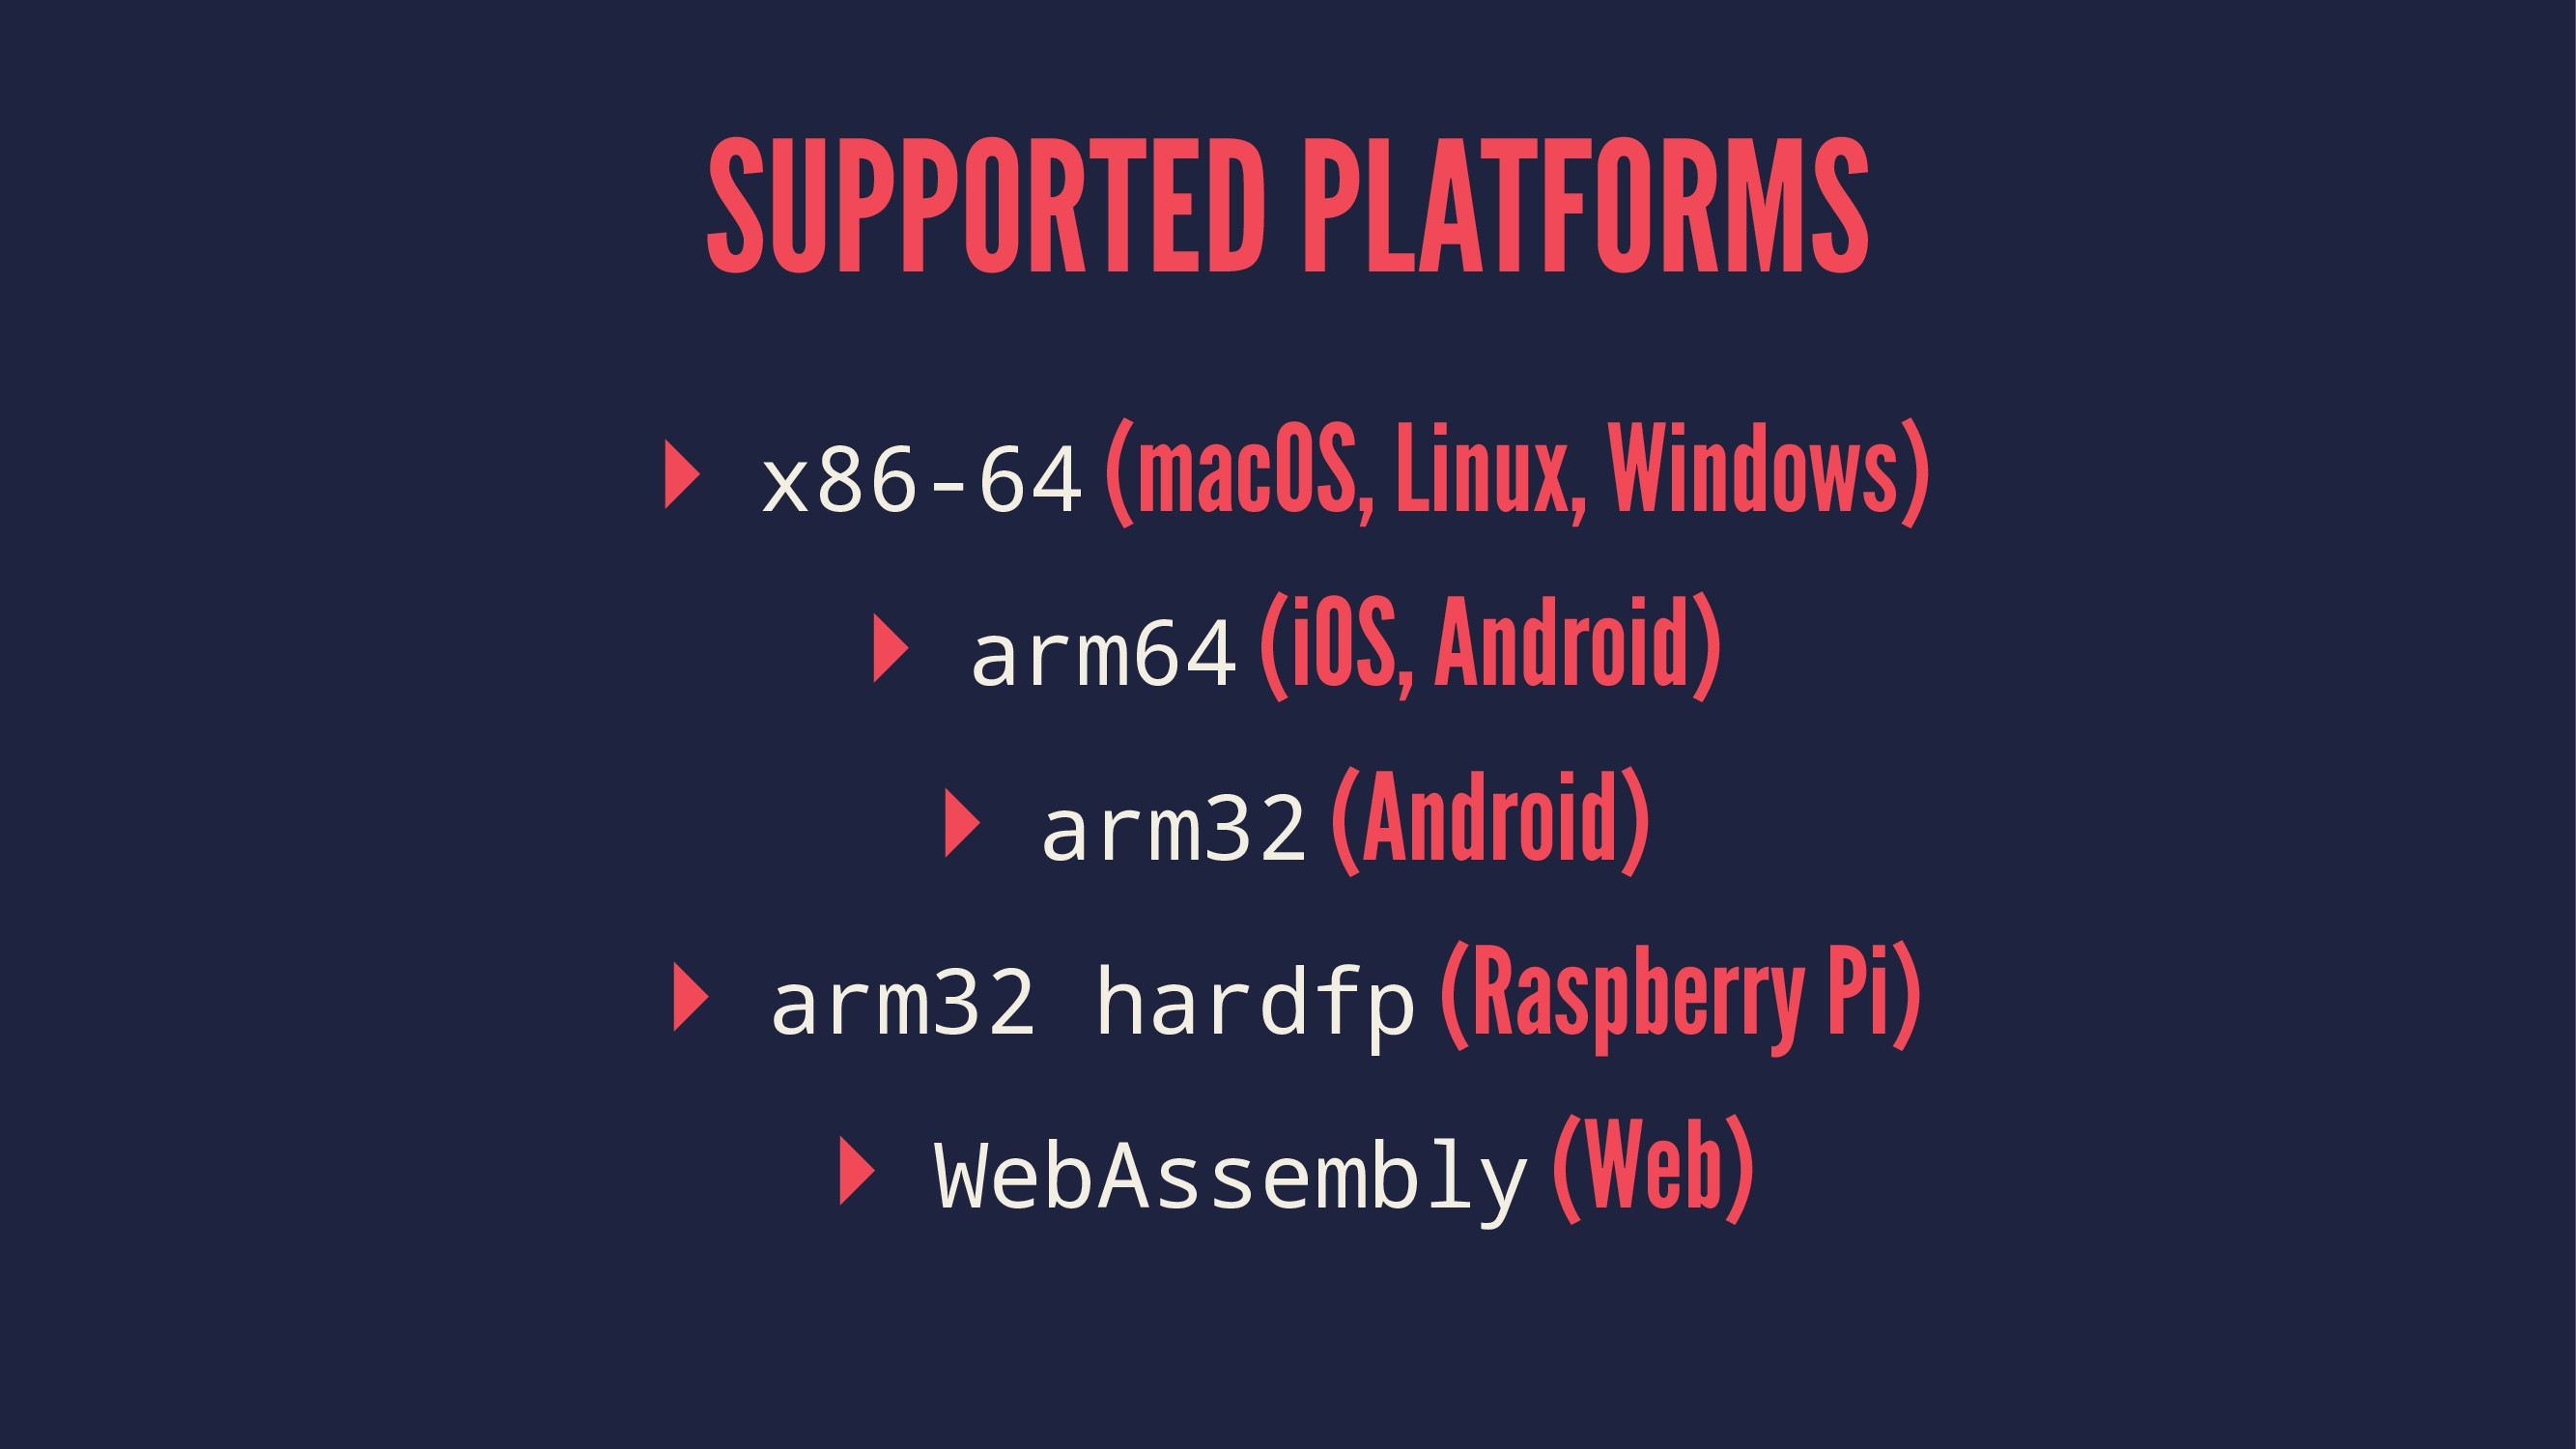 SUPPORTED PLATFORMS ▸ x86-64 (macOS, Linux, Win...